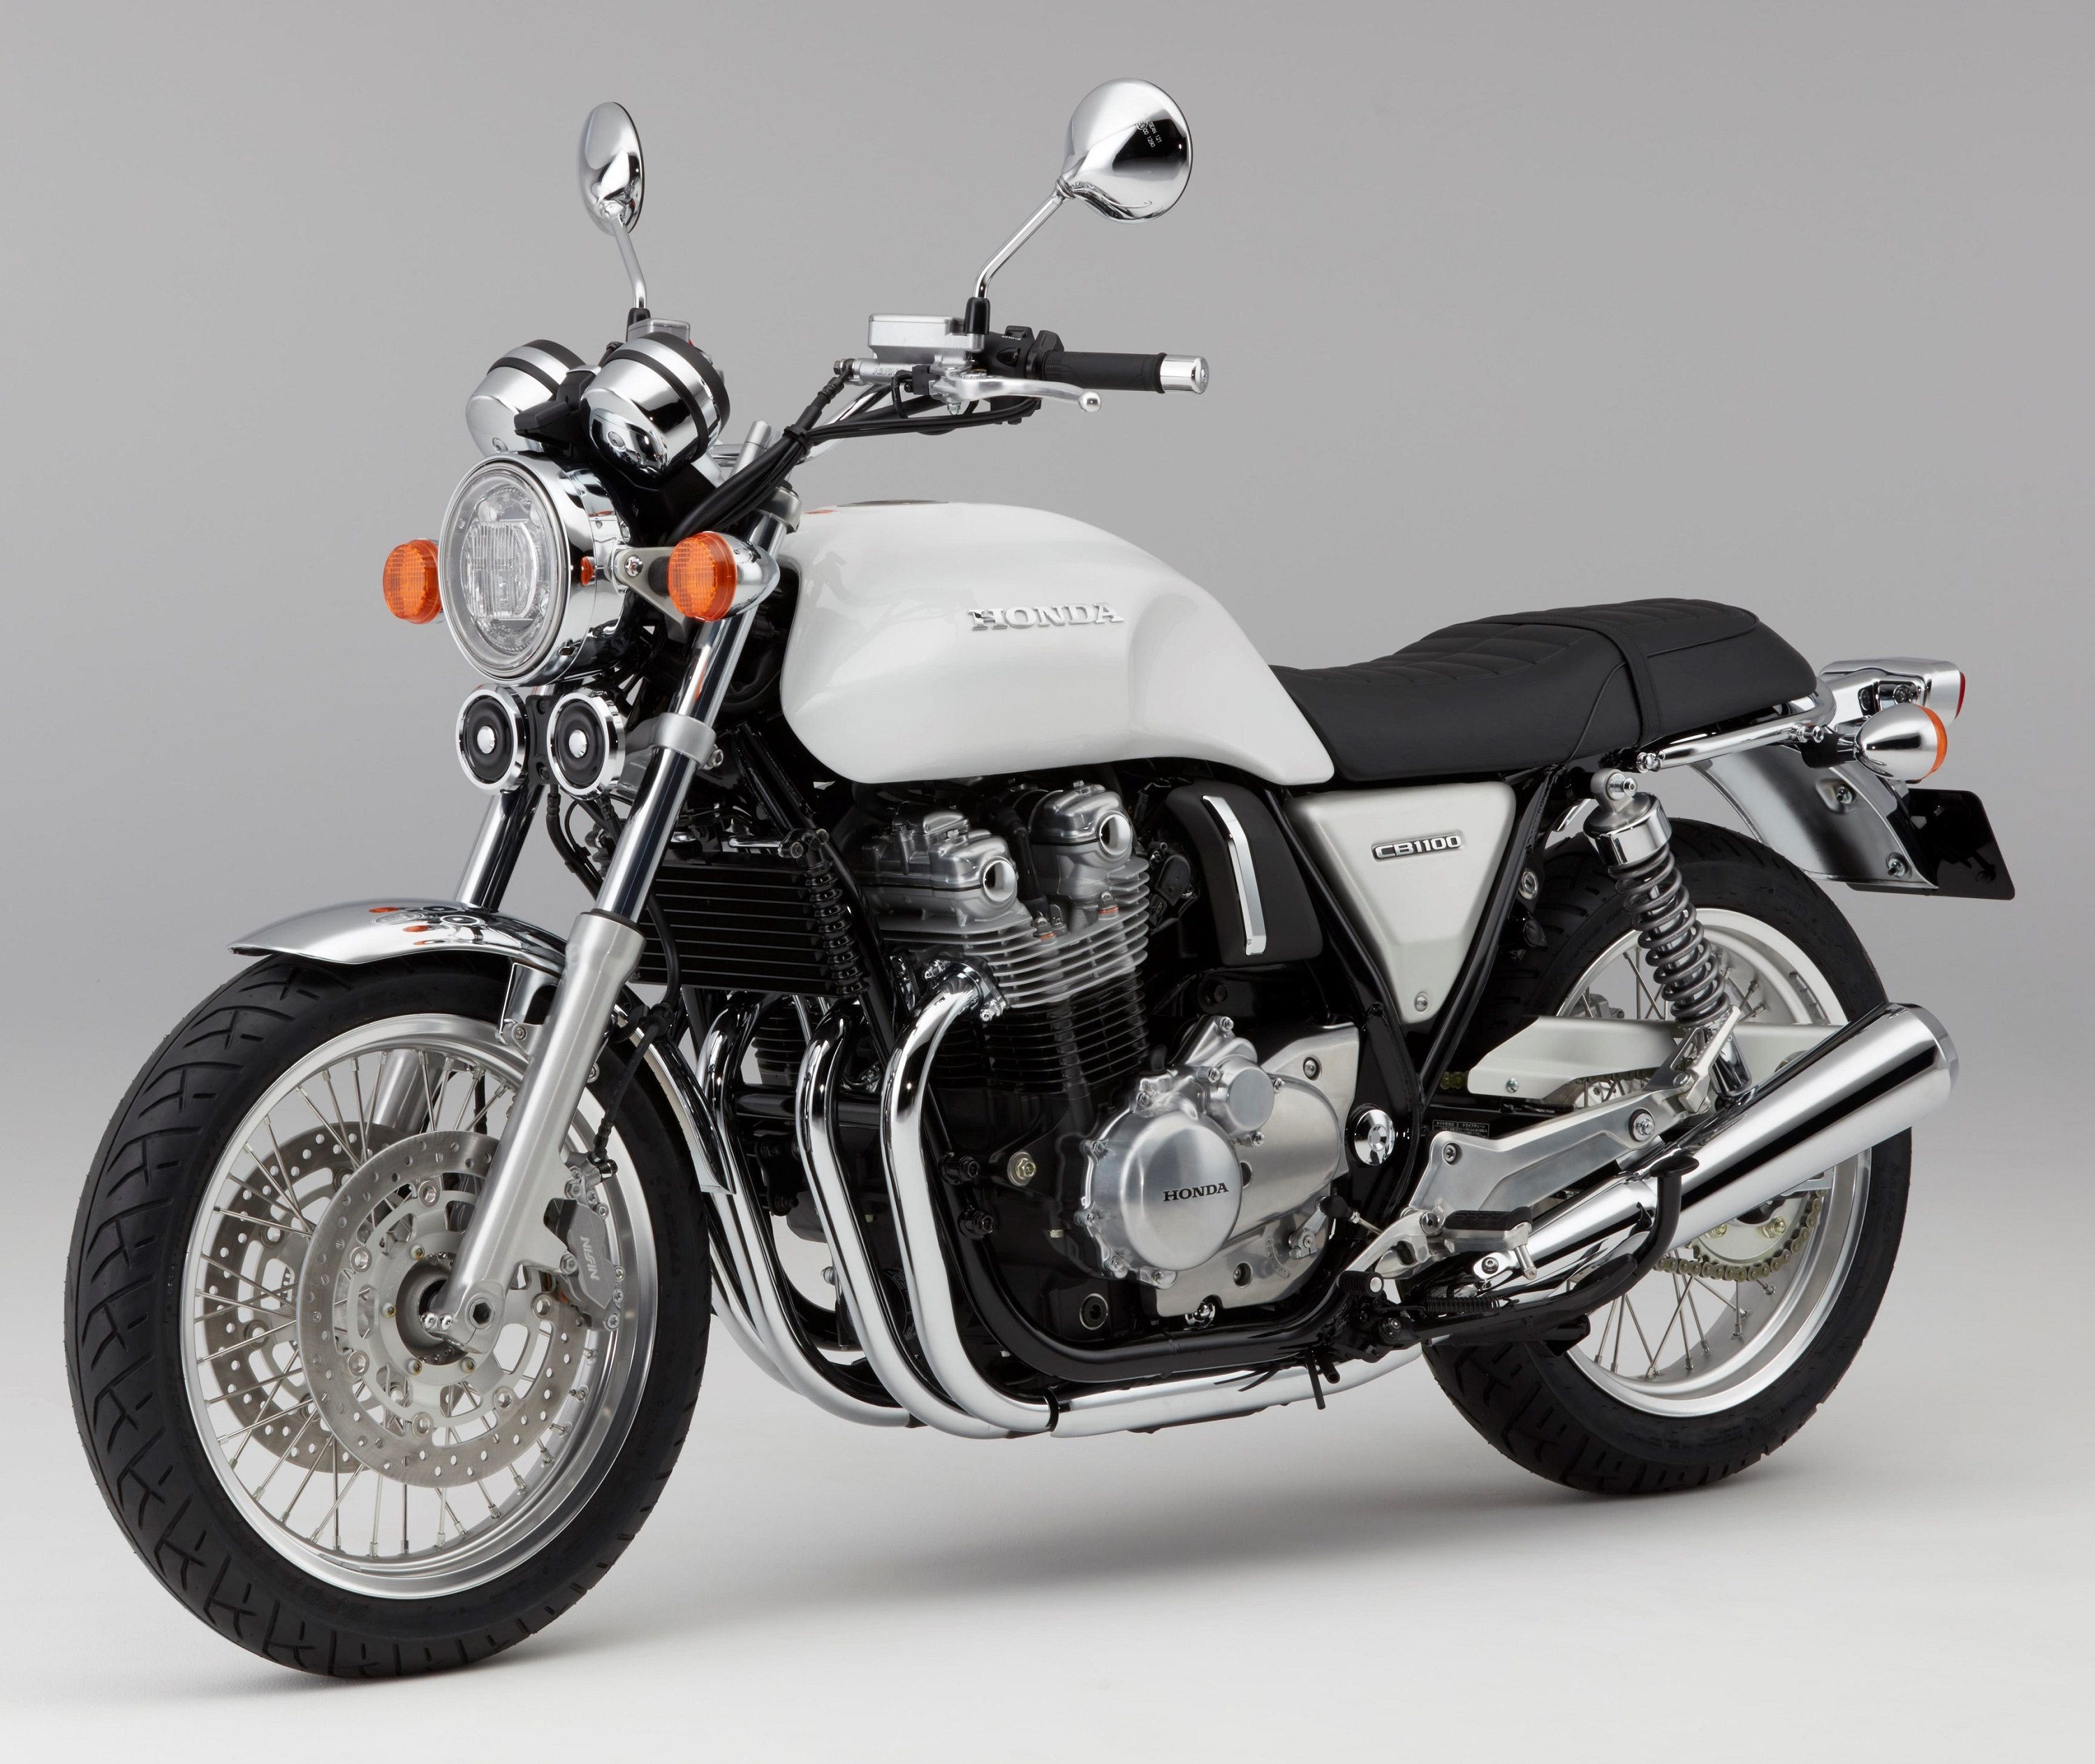 medium resolution of honda cb1100 ex 2014 on for sale pricing also consider videos